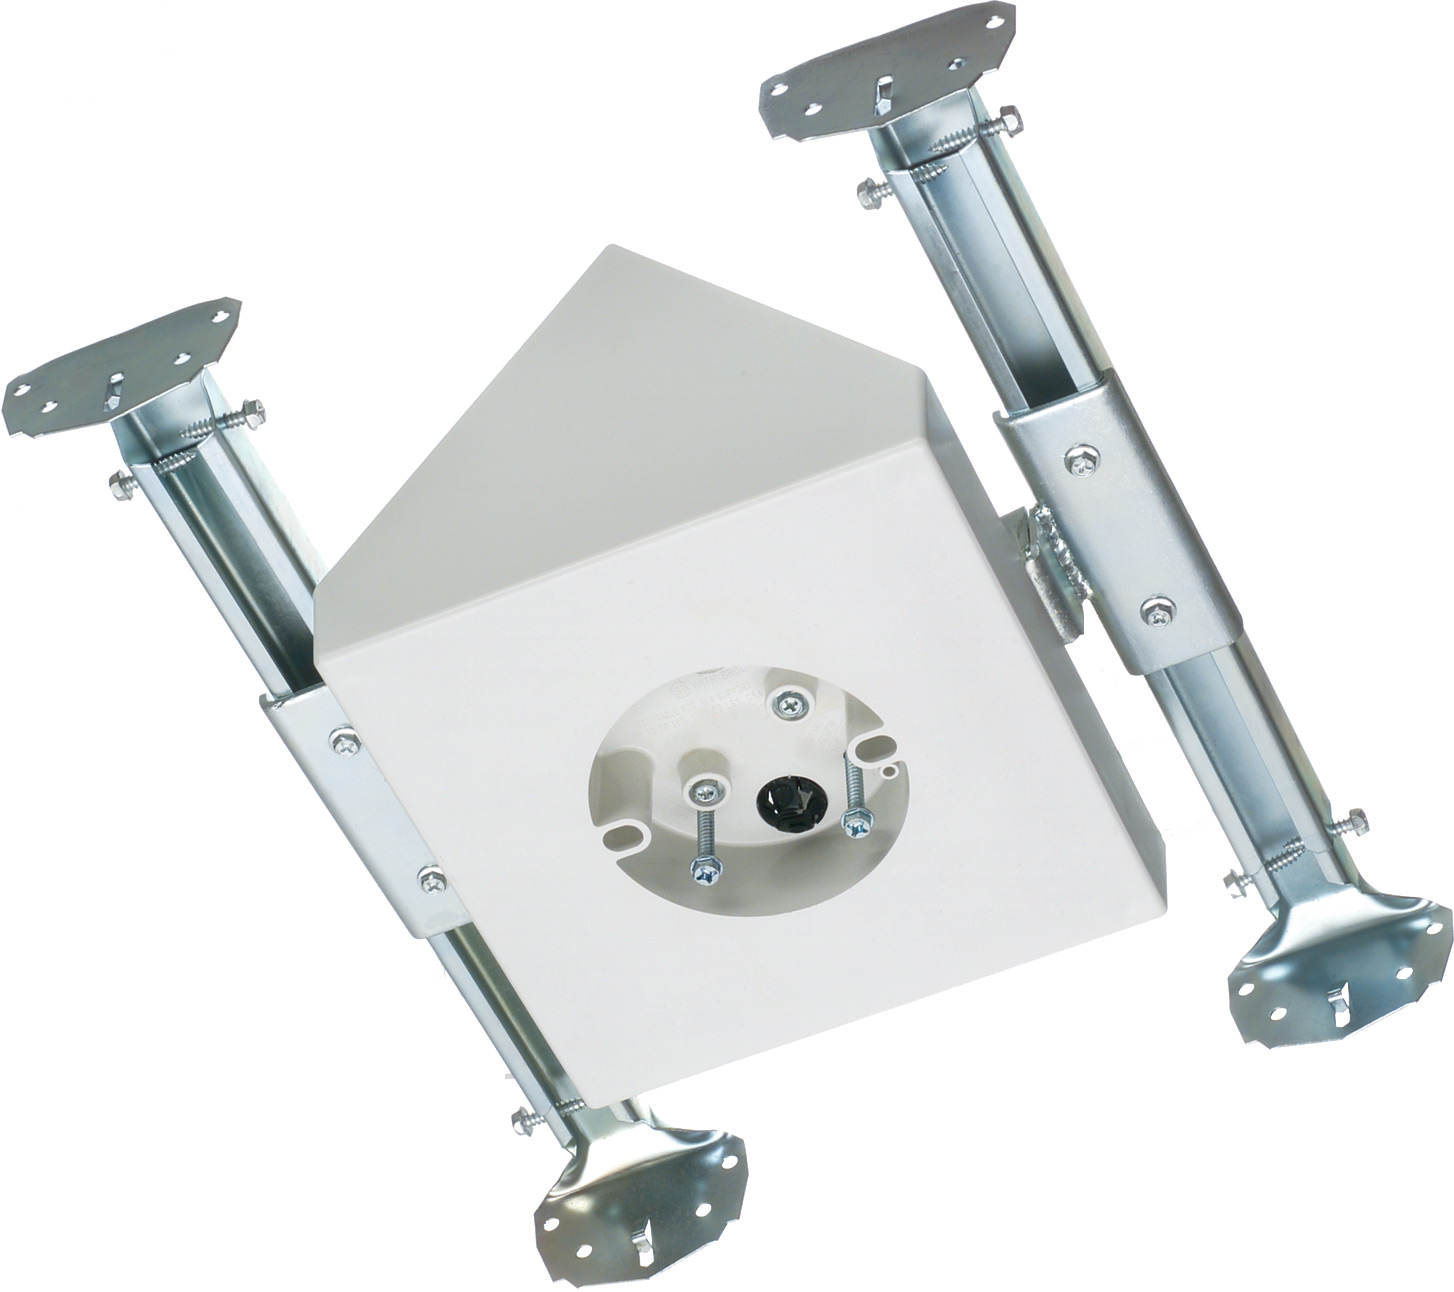 Ceiling Lamp Bracket: Fan & Fixture Mounting Box W